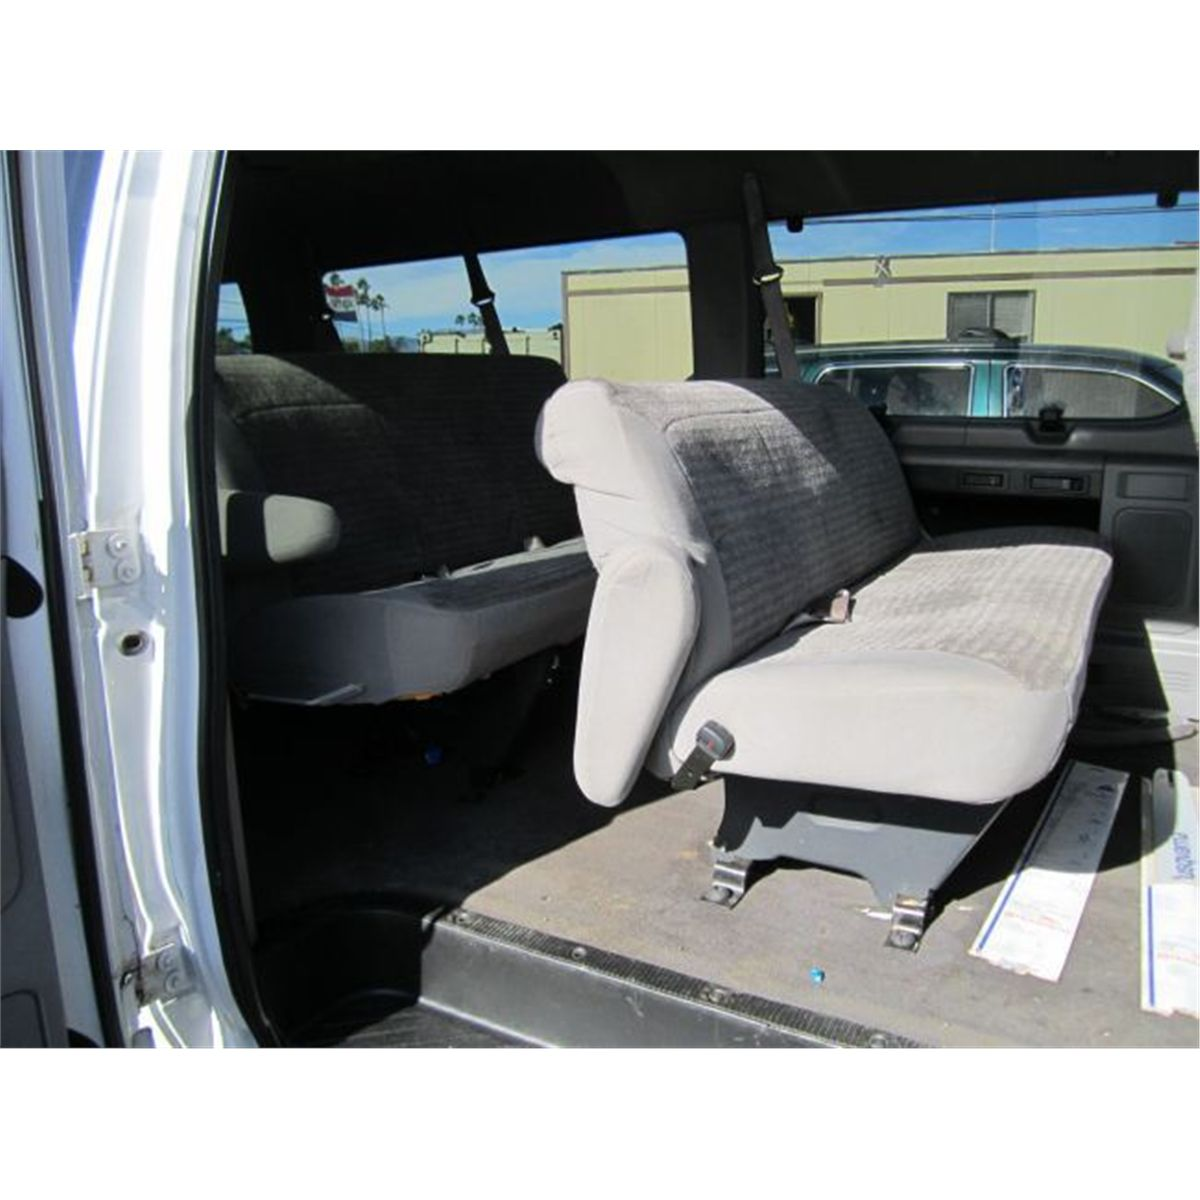 medium resolution of  image 6 2000 ford e 350 xlt 15 passenger van